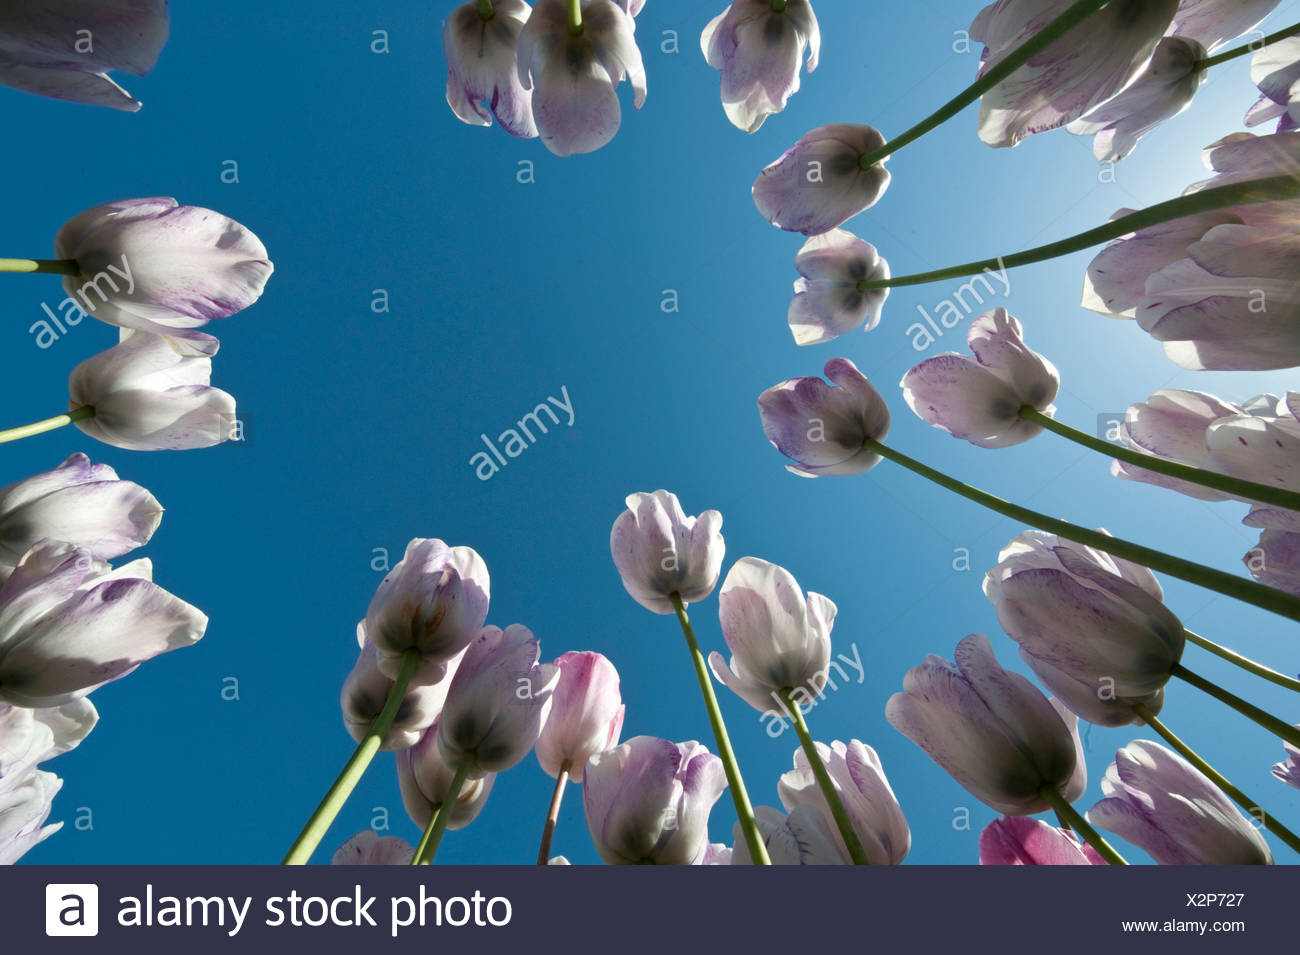 Tulips (Tulipa), Texel, Netherlands, Europe - Stock Image